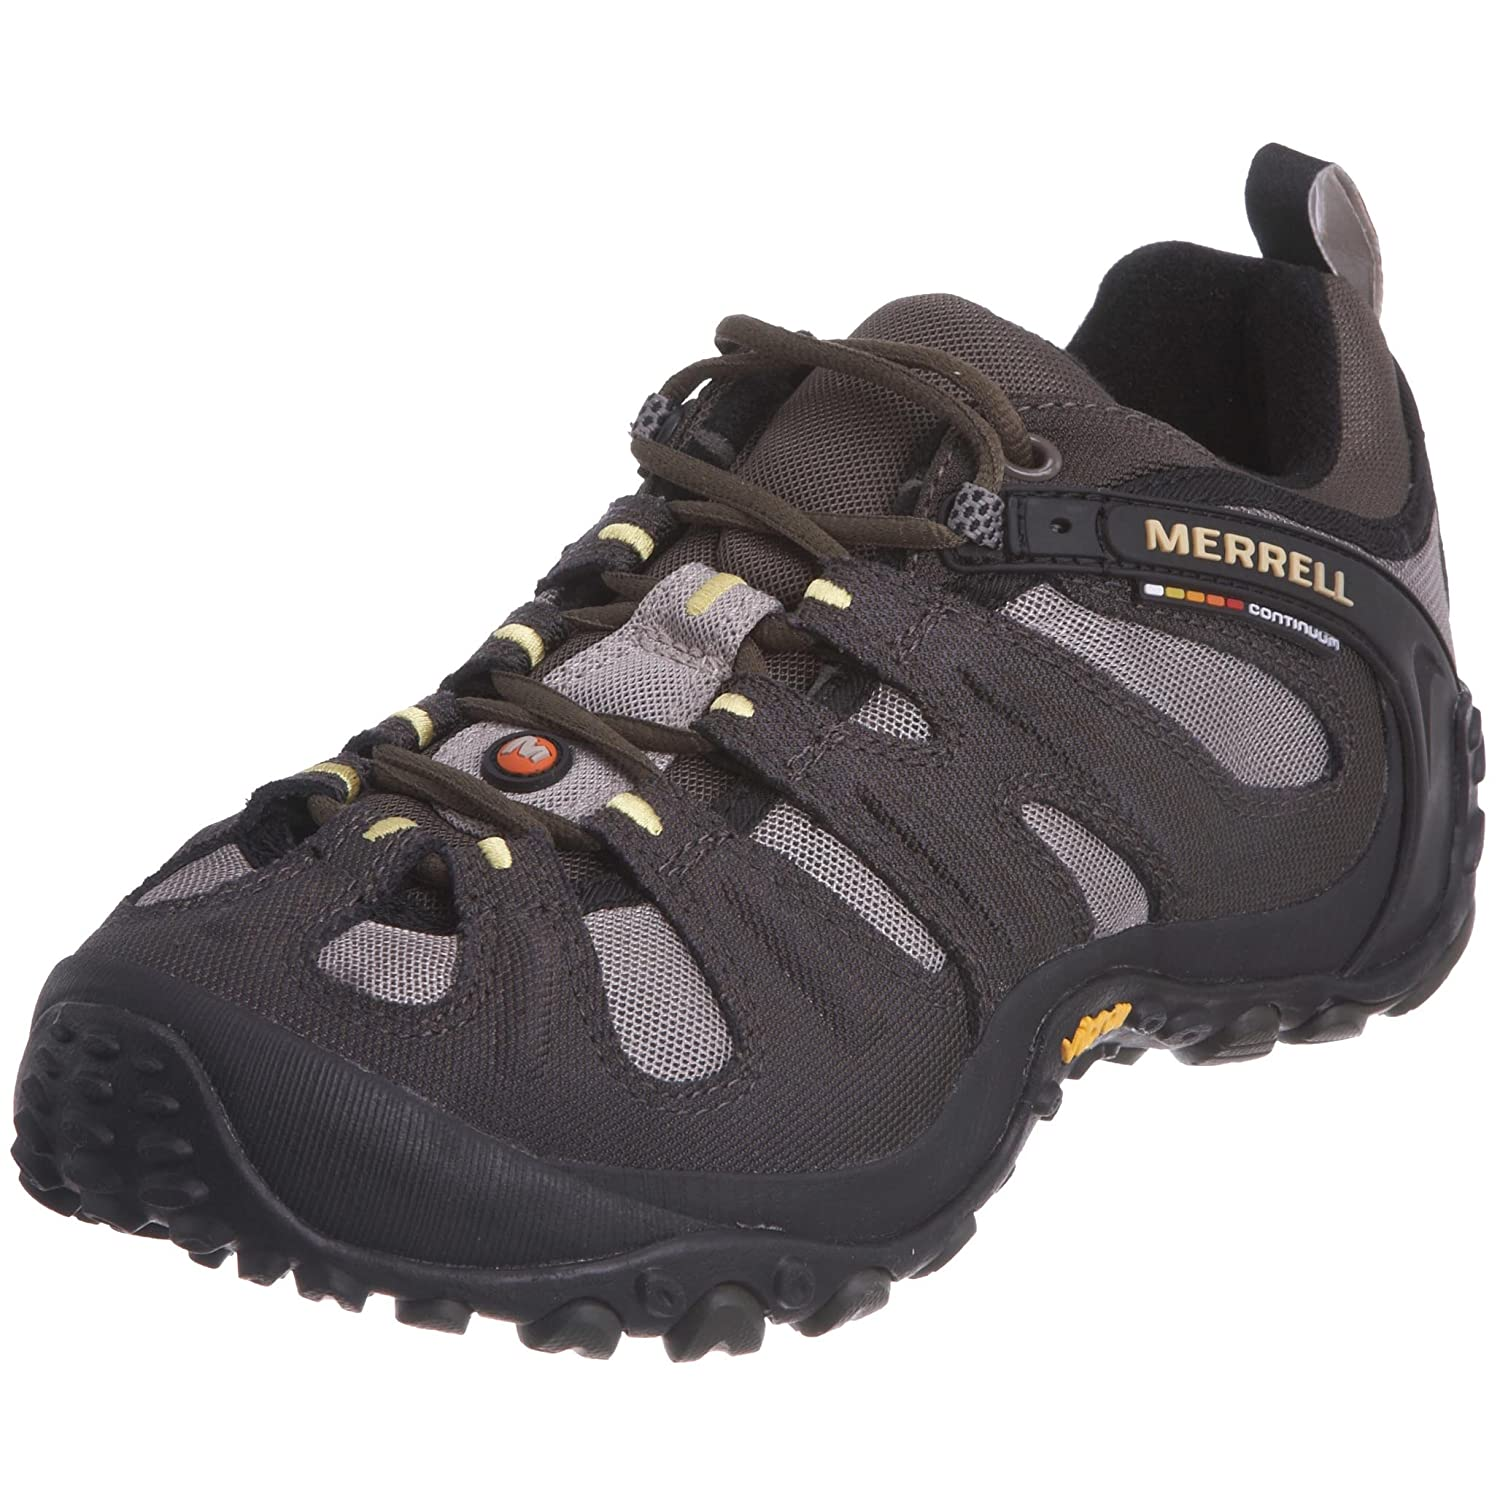 Amazon.com | Merrell Mens Chameleon Slam II Walking Shoe, Dusty Olive - 12 D(M) US | Tennis & Racquet Sports